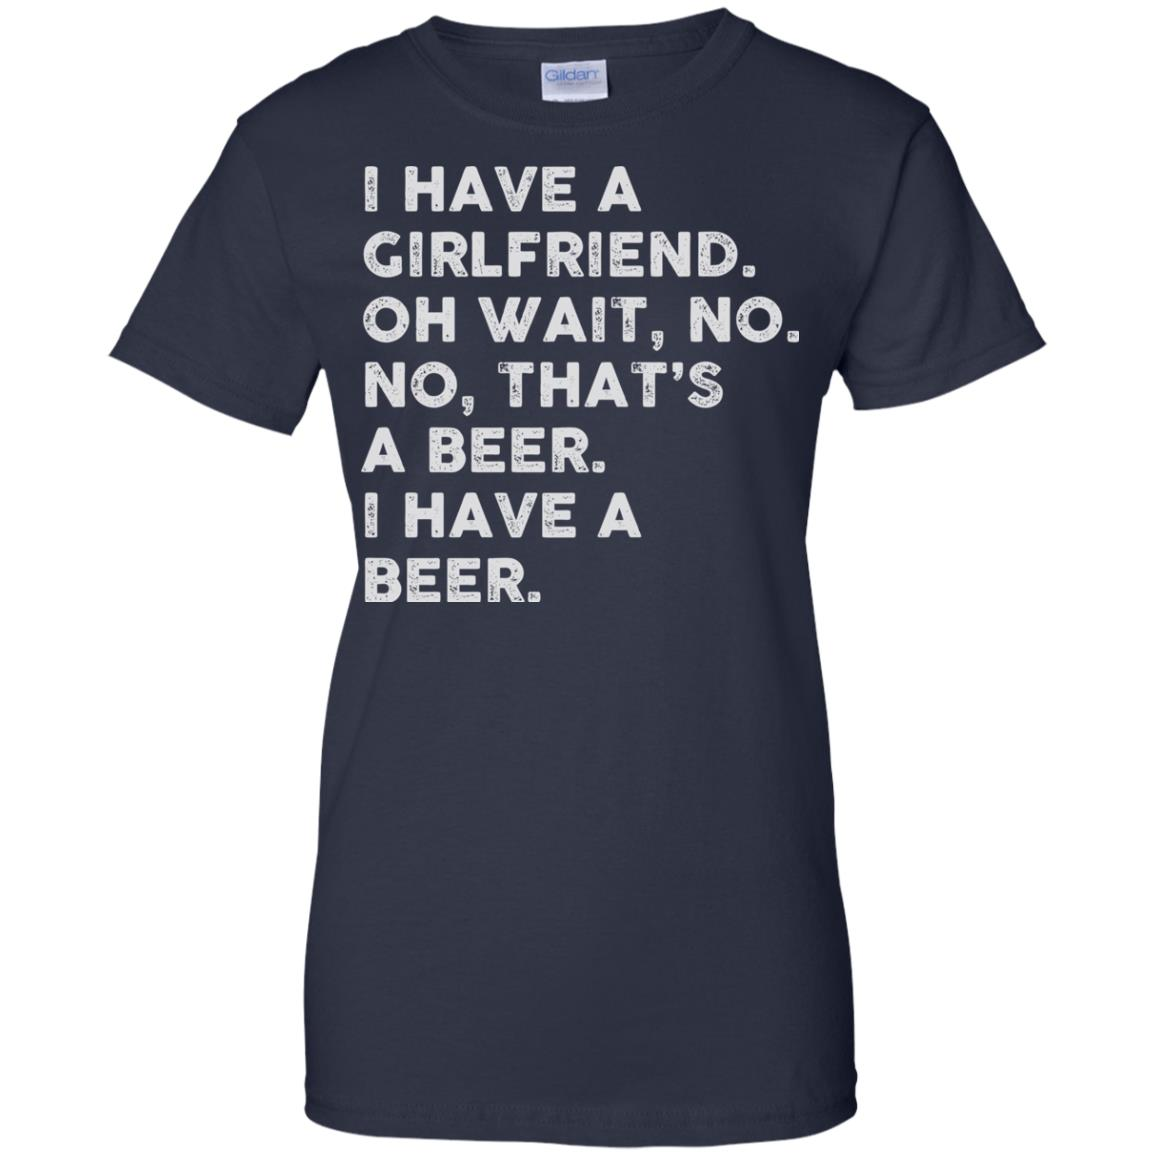 image 2188 - I have a girlfriend oh wait No No that's a beer shirt, hoodie